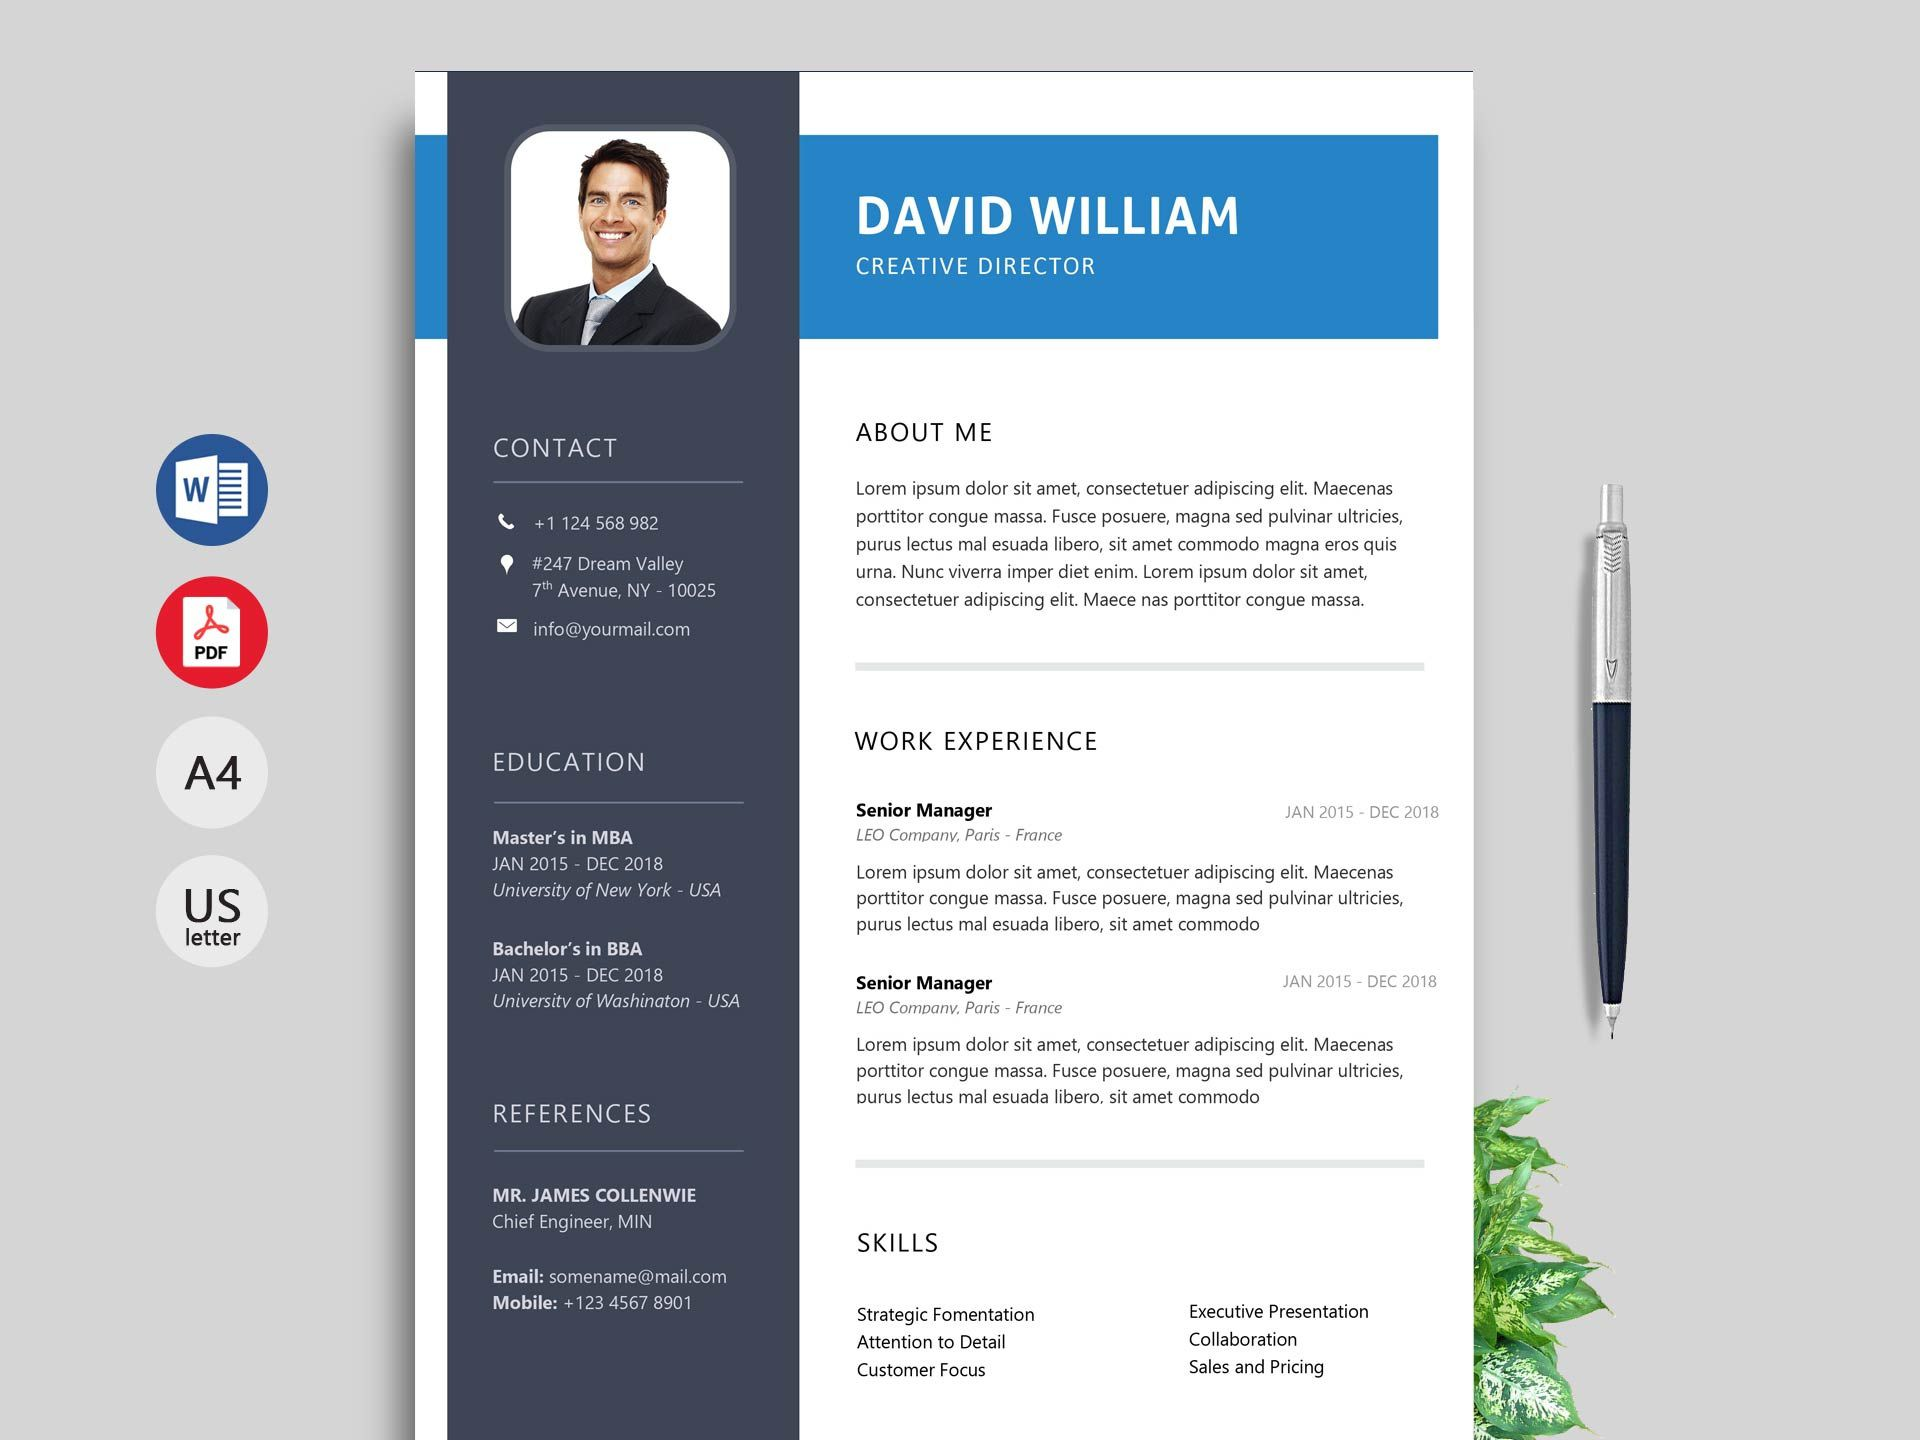 007 Marvelou Download Resume Template Word 2018 Highest Clarity  FreeFull